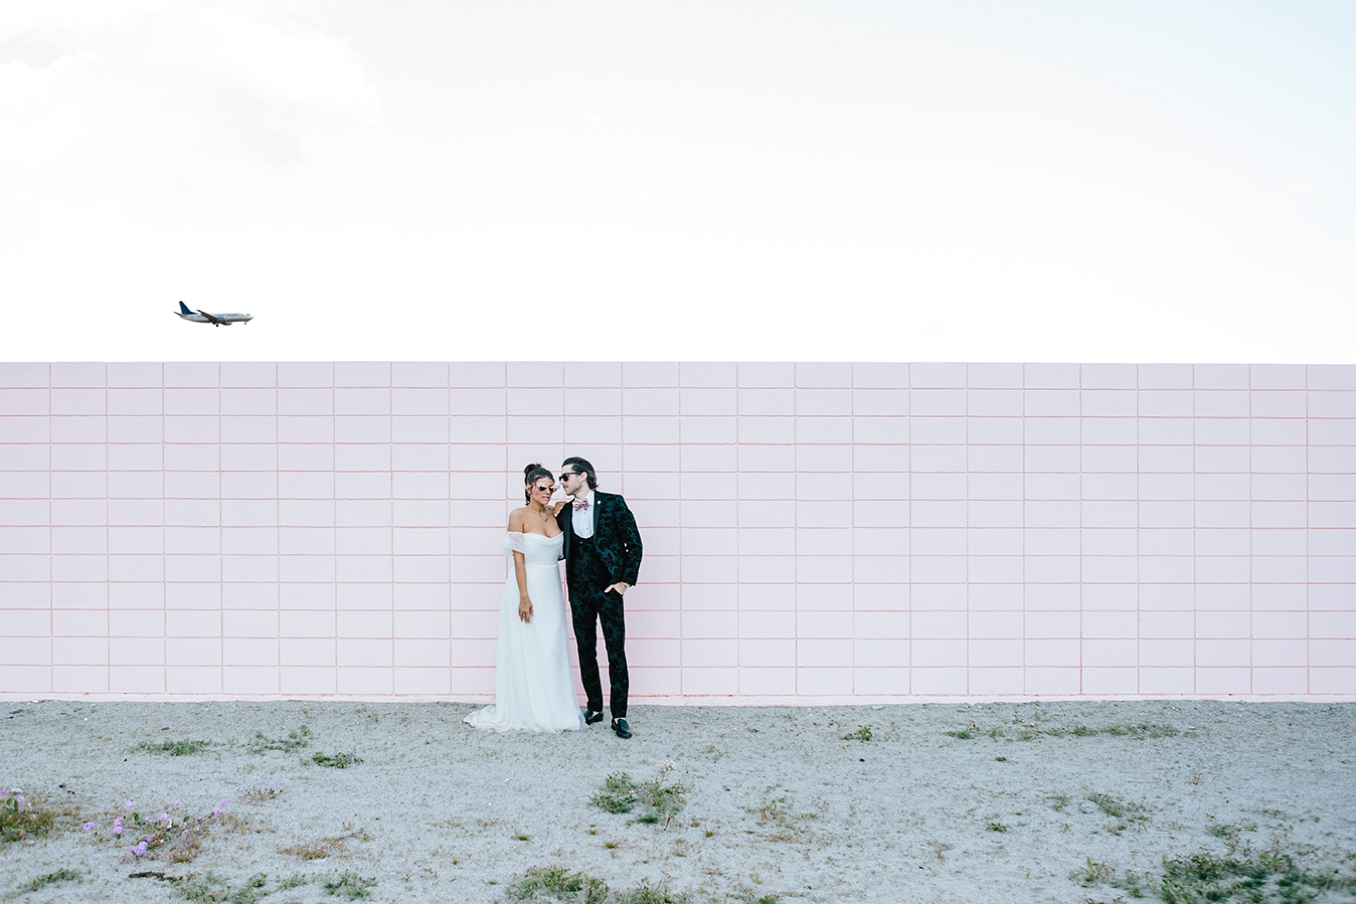 Molly Tarlov and Alexander Noyes wedding at Colony 29. Photos by STUDIO 1208